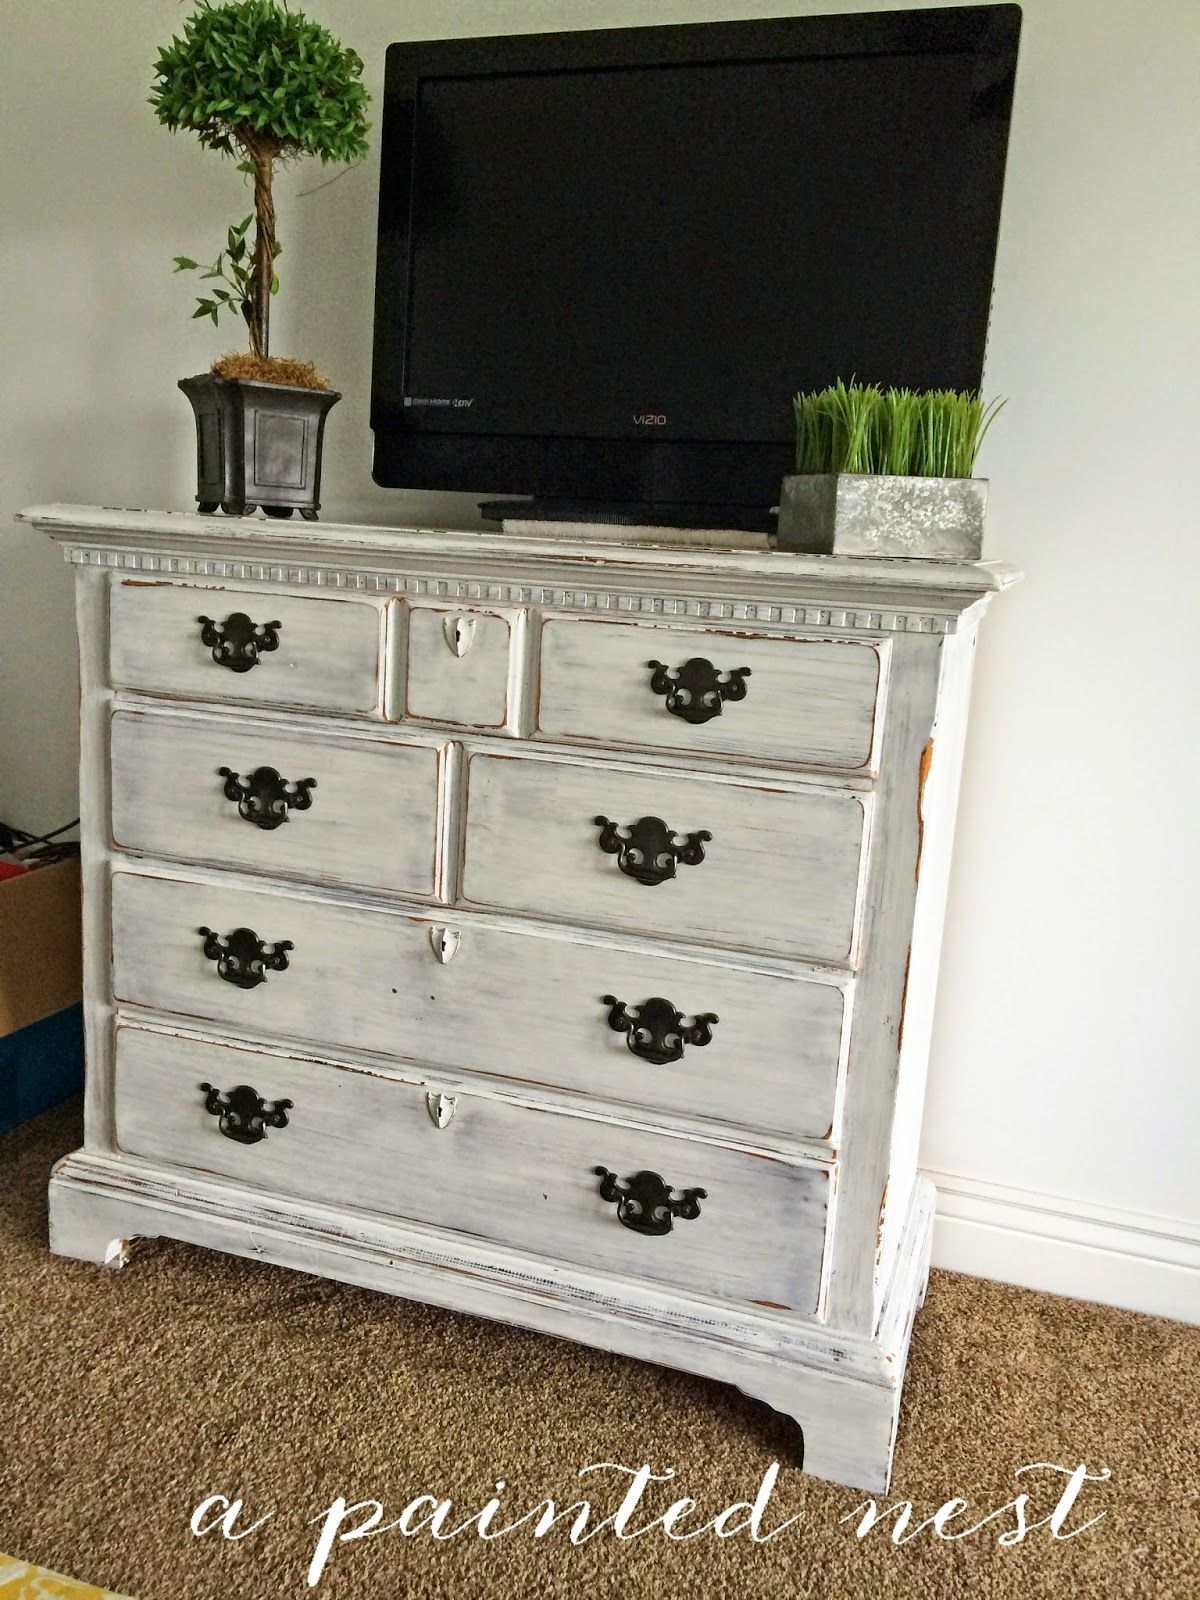 Superieur White Antiqued And Distressed 4 Drawer Dresser, This Is Perfect For A Bedroom  Entertainment Center!